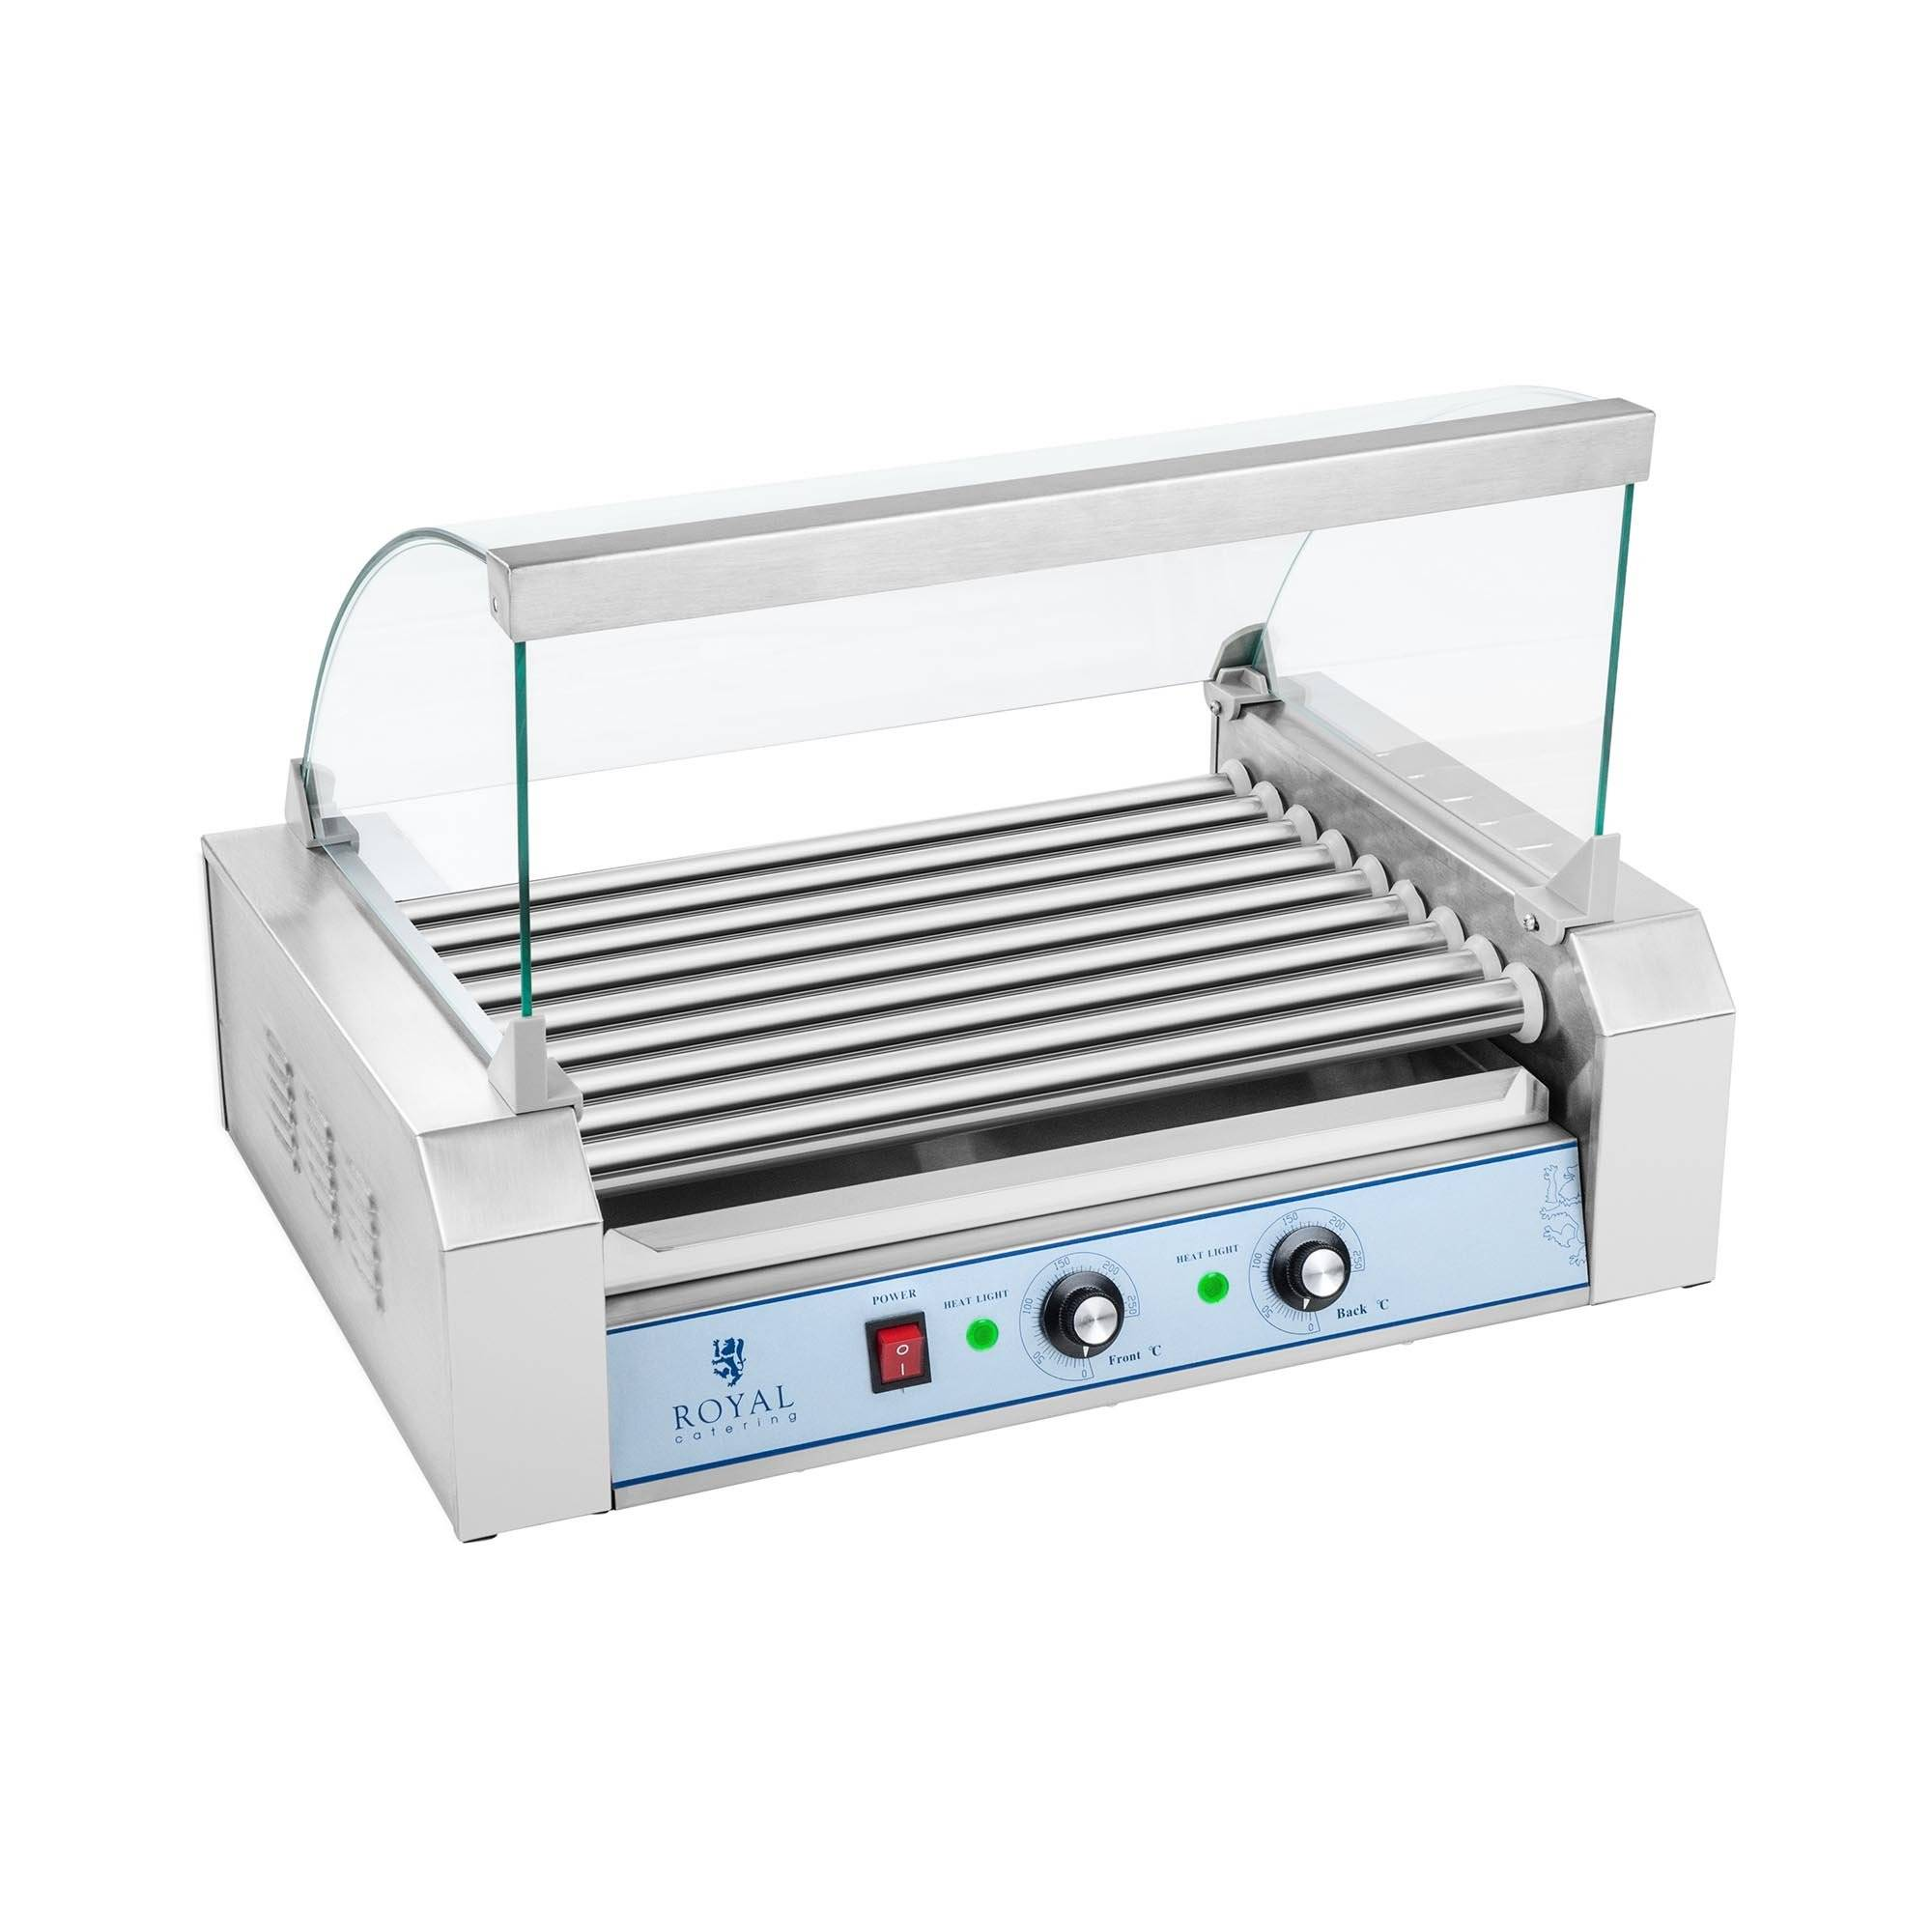 Royal Catering Commercial Hot Dog Grill - 9 rollers - stainless steel